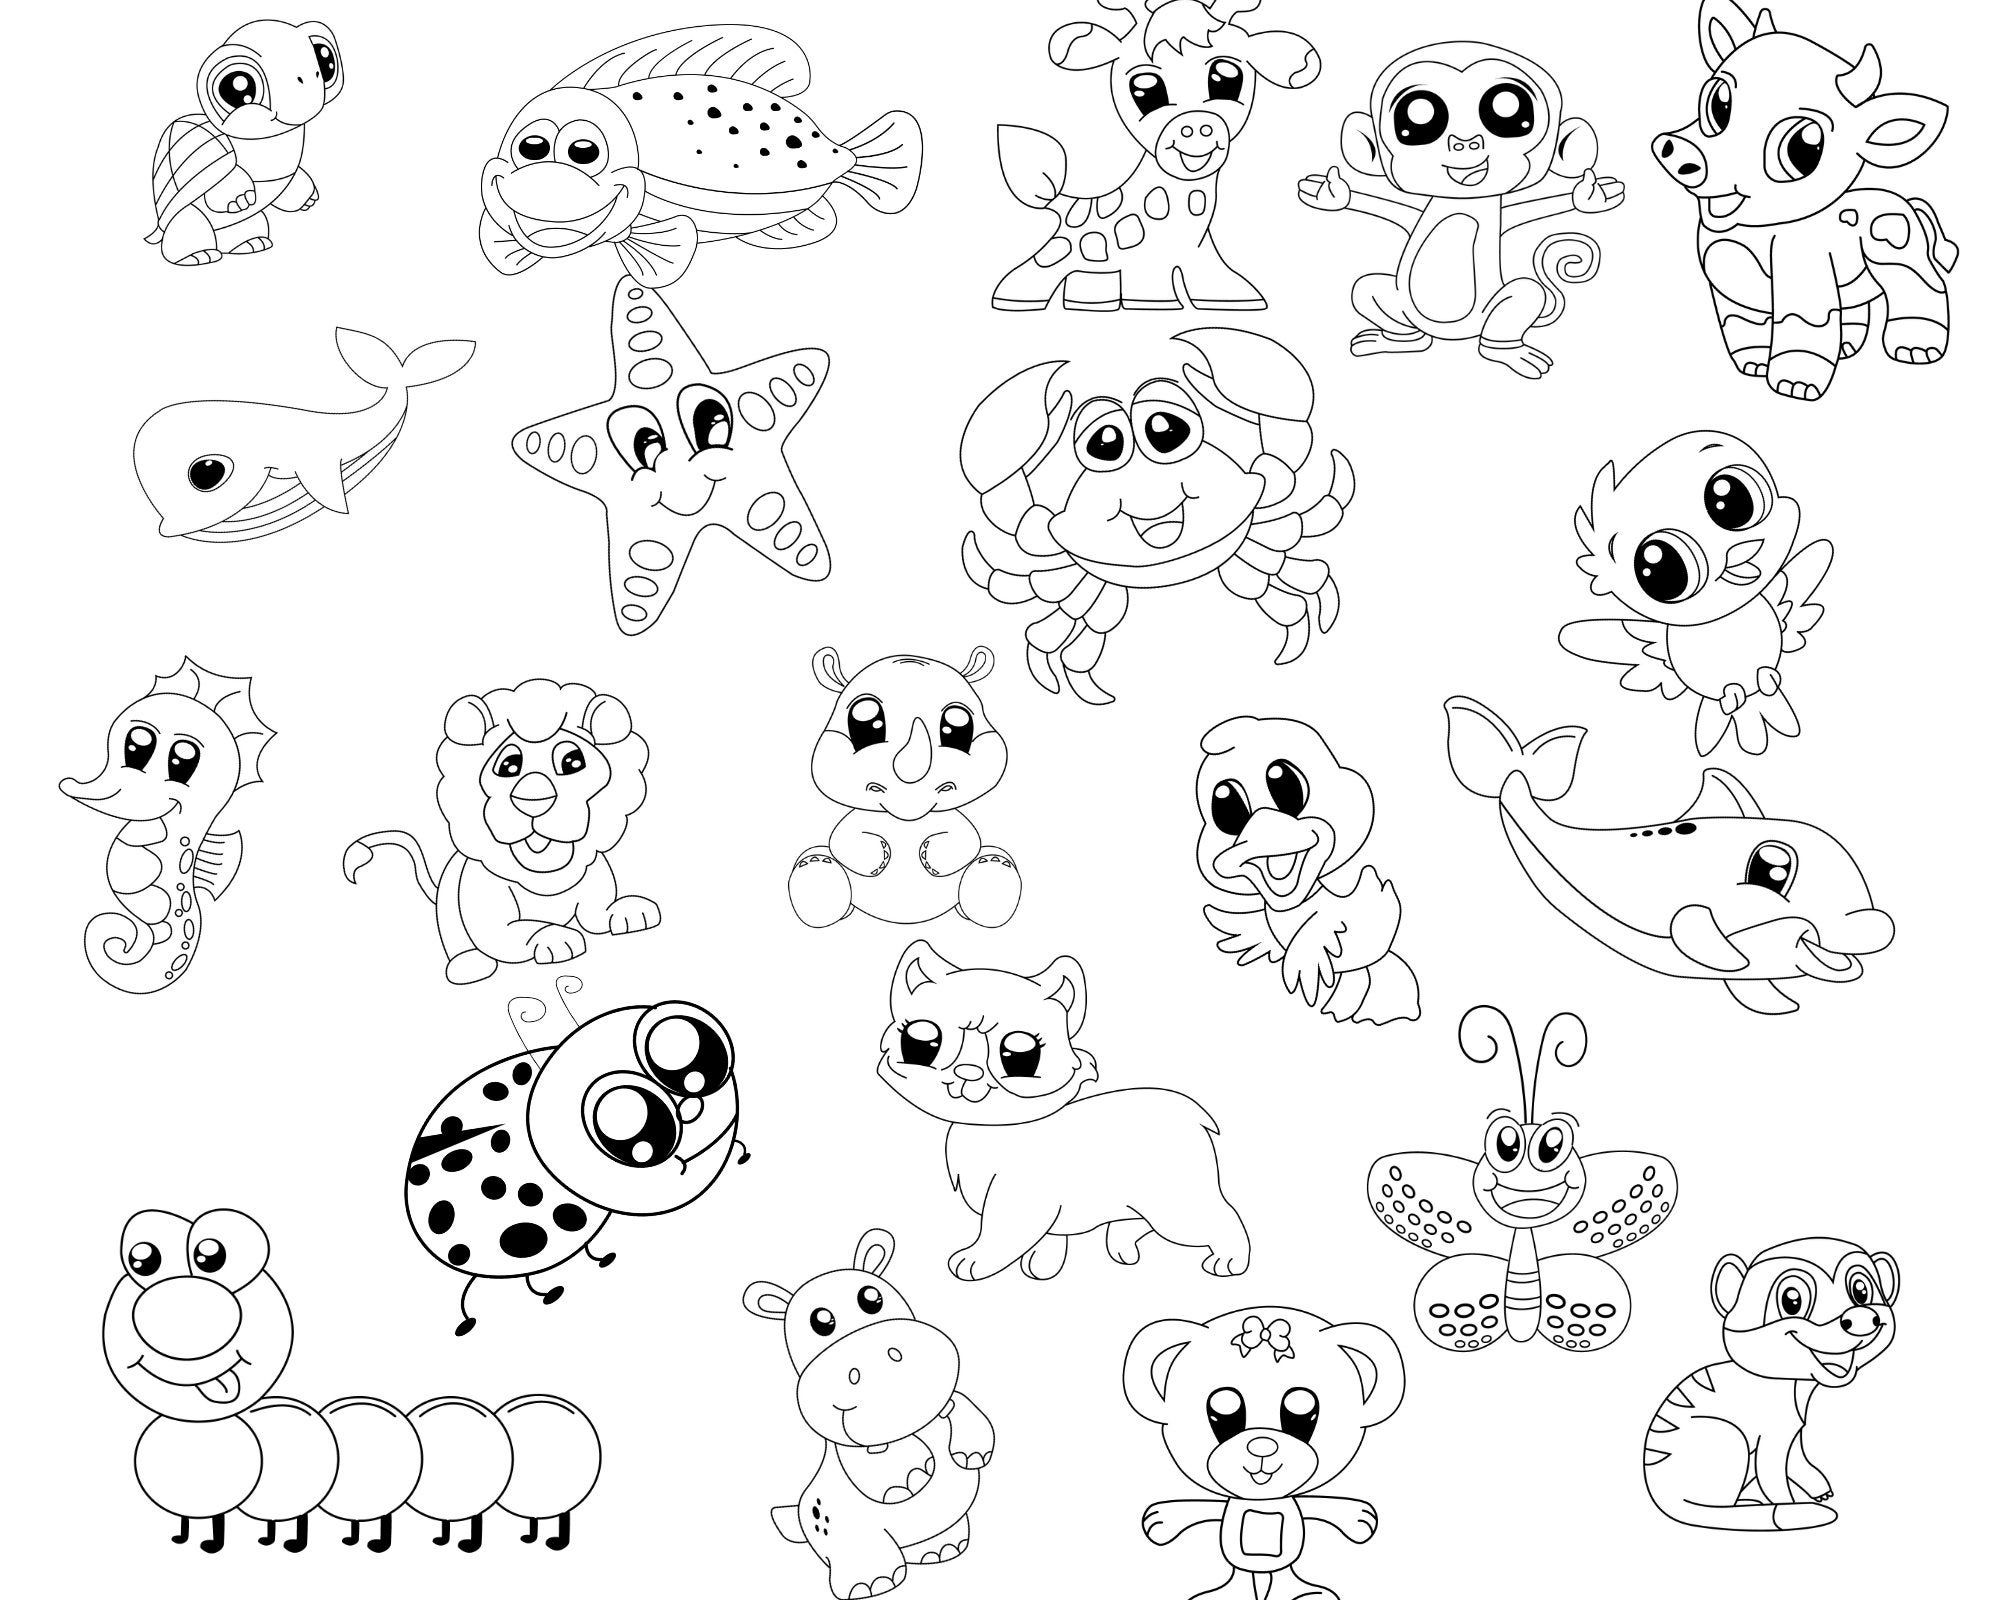 15 Cute Animals Coloring Sheets Pdf For Kids For Instant Etsy Coloring Sheets Printable Art Coloring Books